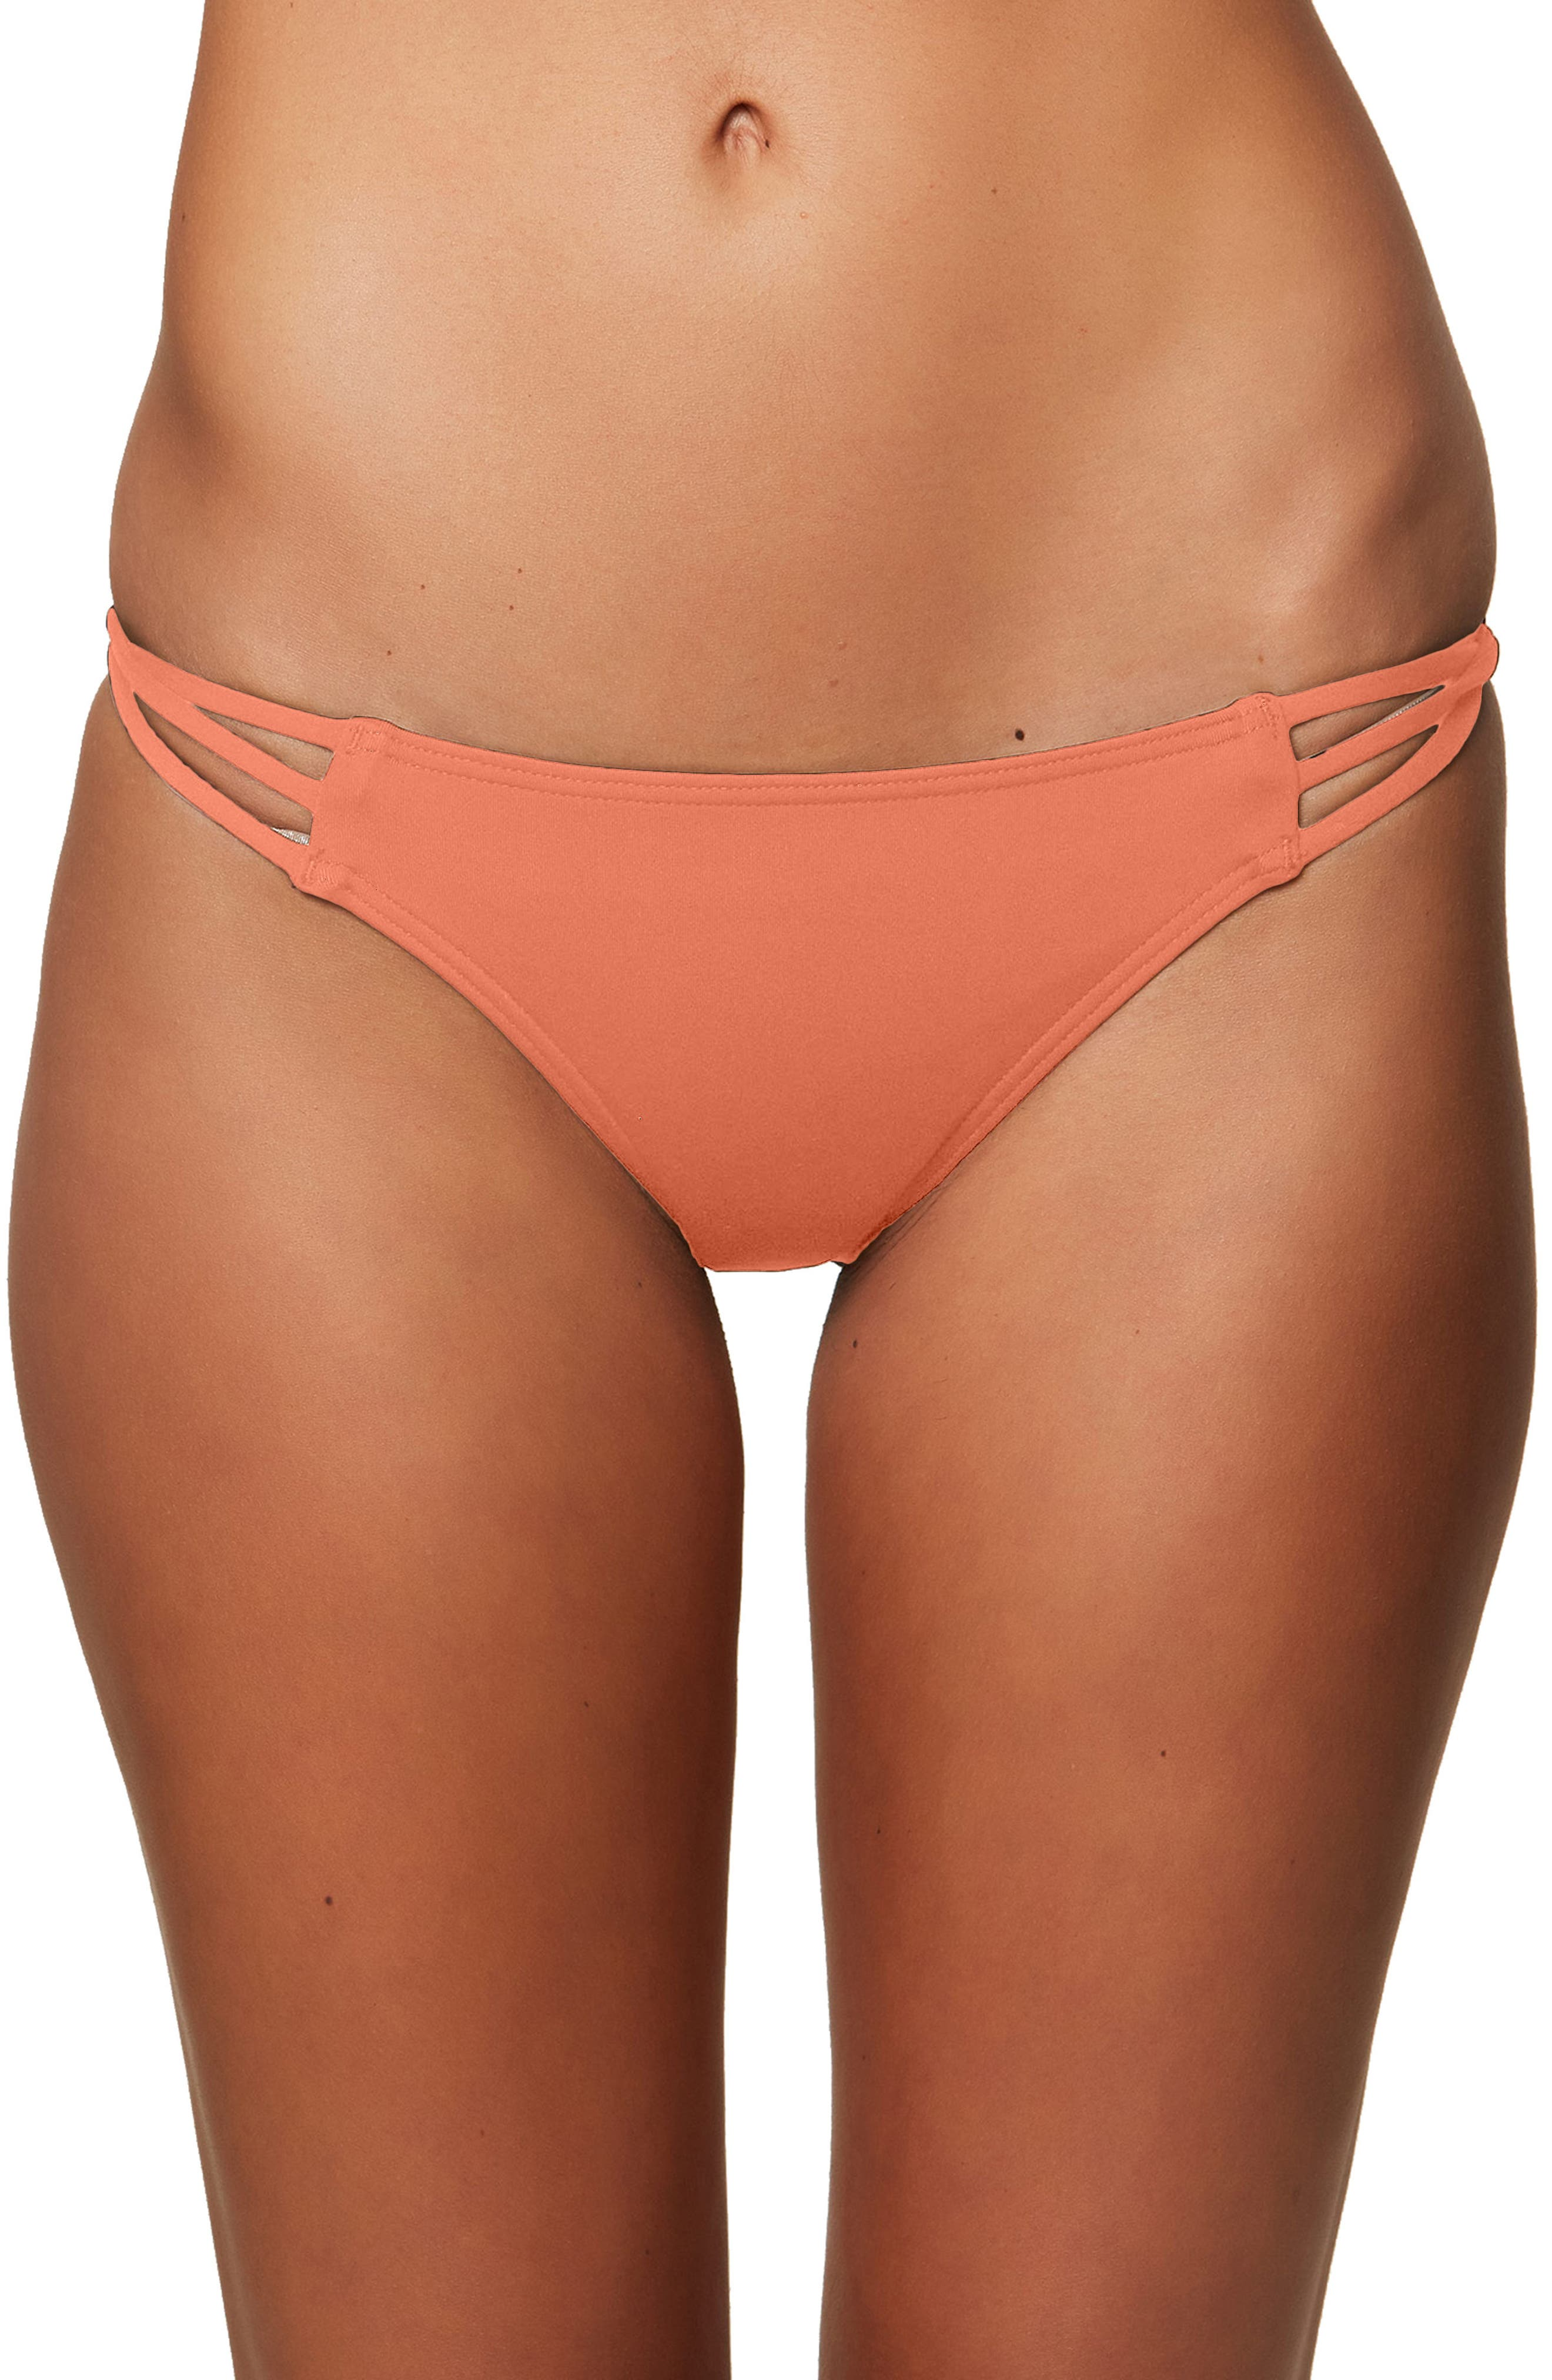 Salt Water Solids Strappy Bikini Bottoms,                         Main,                         color, Coral Punch